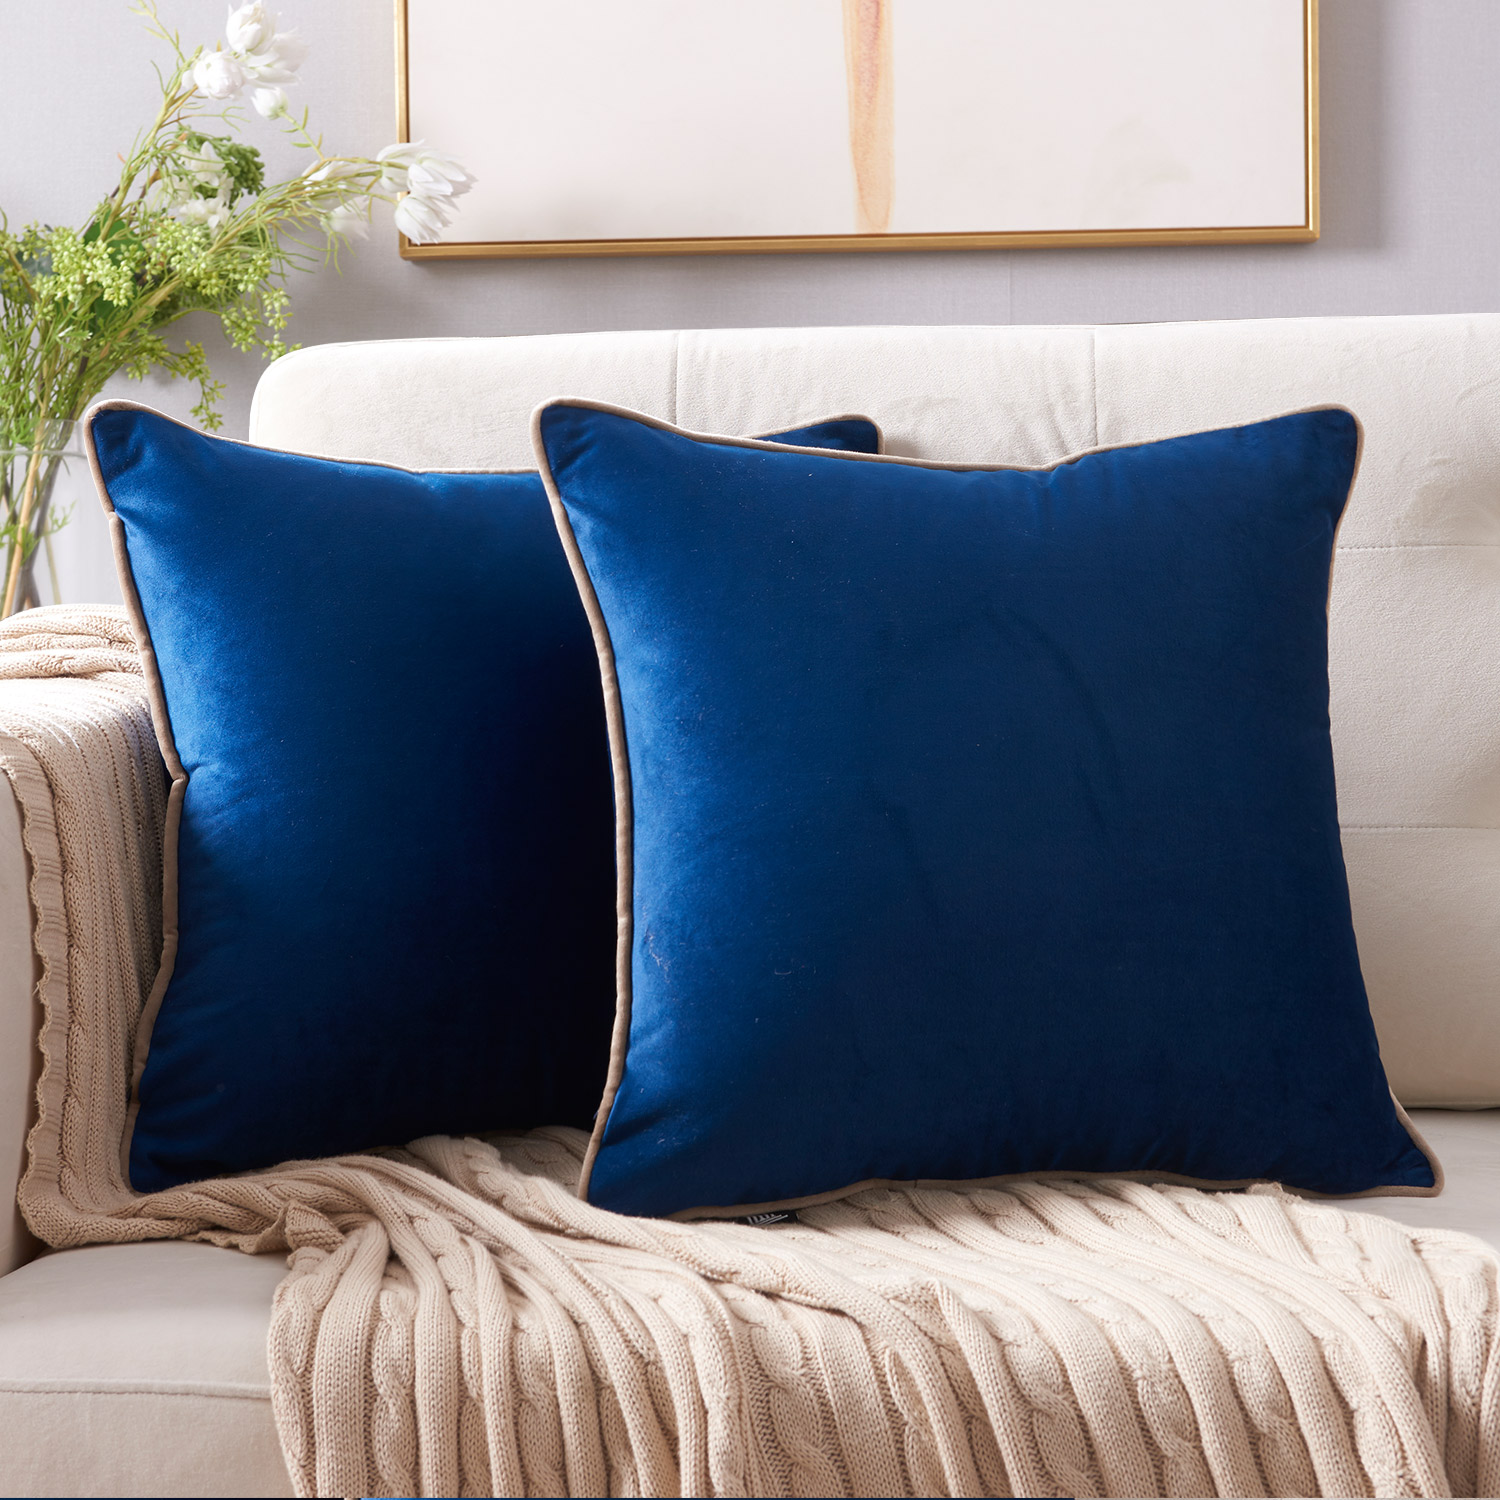 "2pc Square Cushion Throw Pillow Cover, Velvet Decorative Solid Pillow Case (navy blue, 18""x18"")"